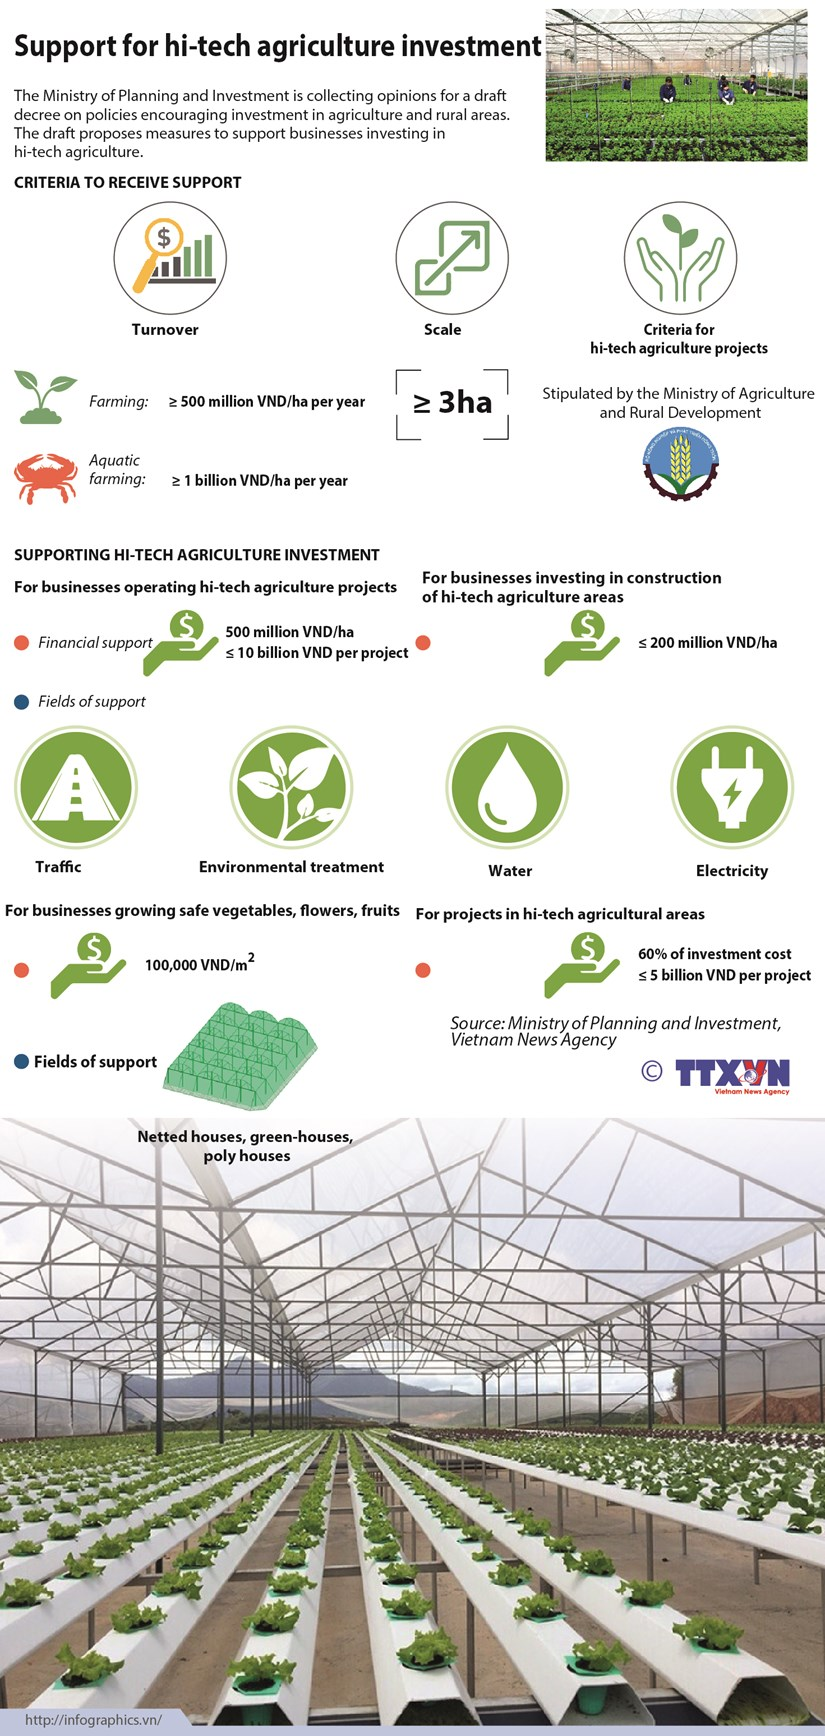 Support for hi-tech agriculture investment hinh anh 1